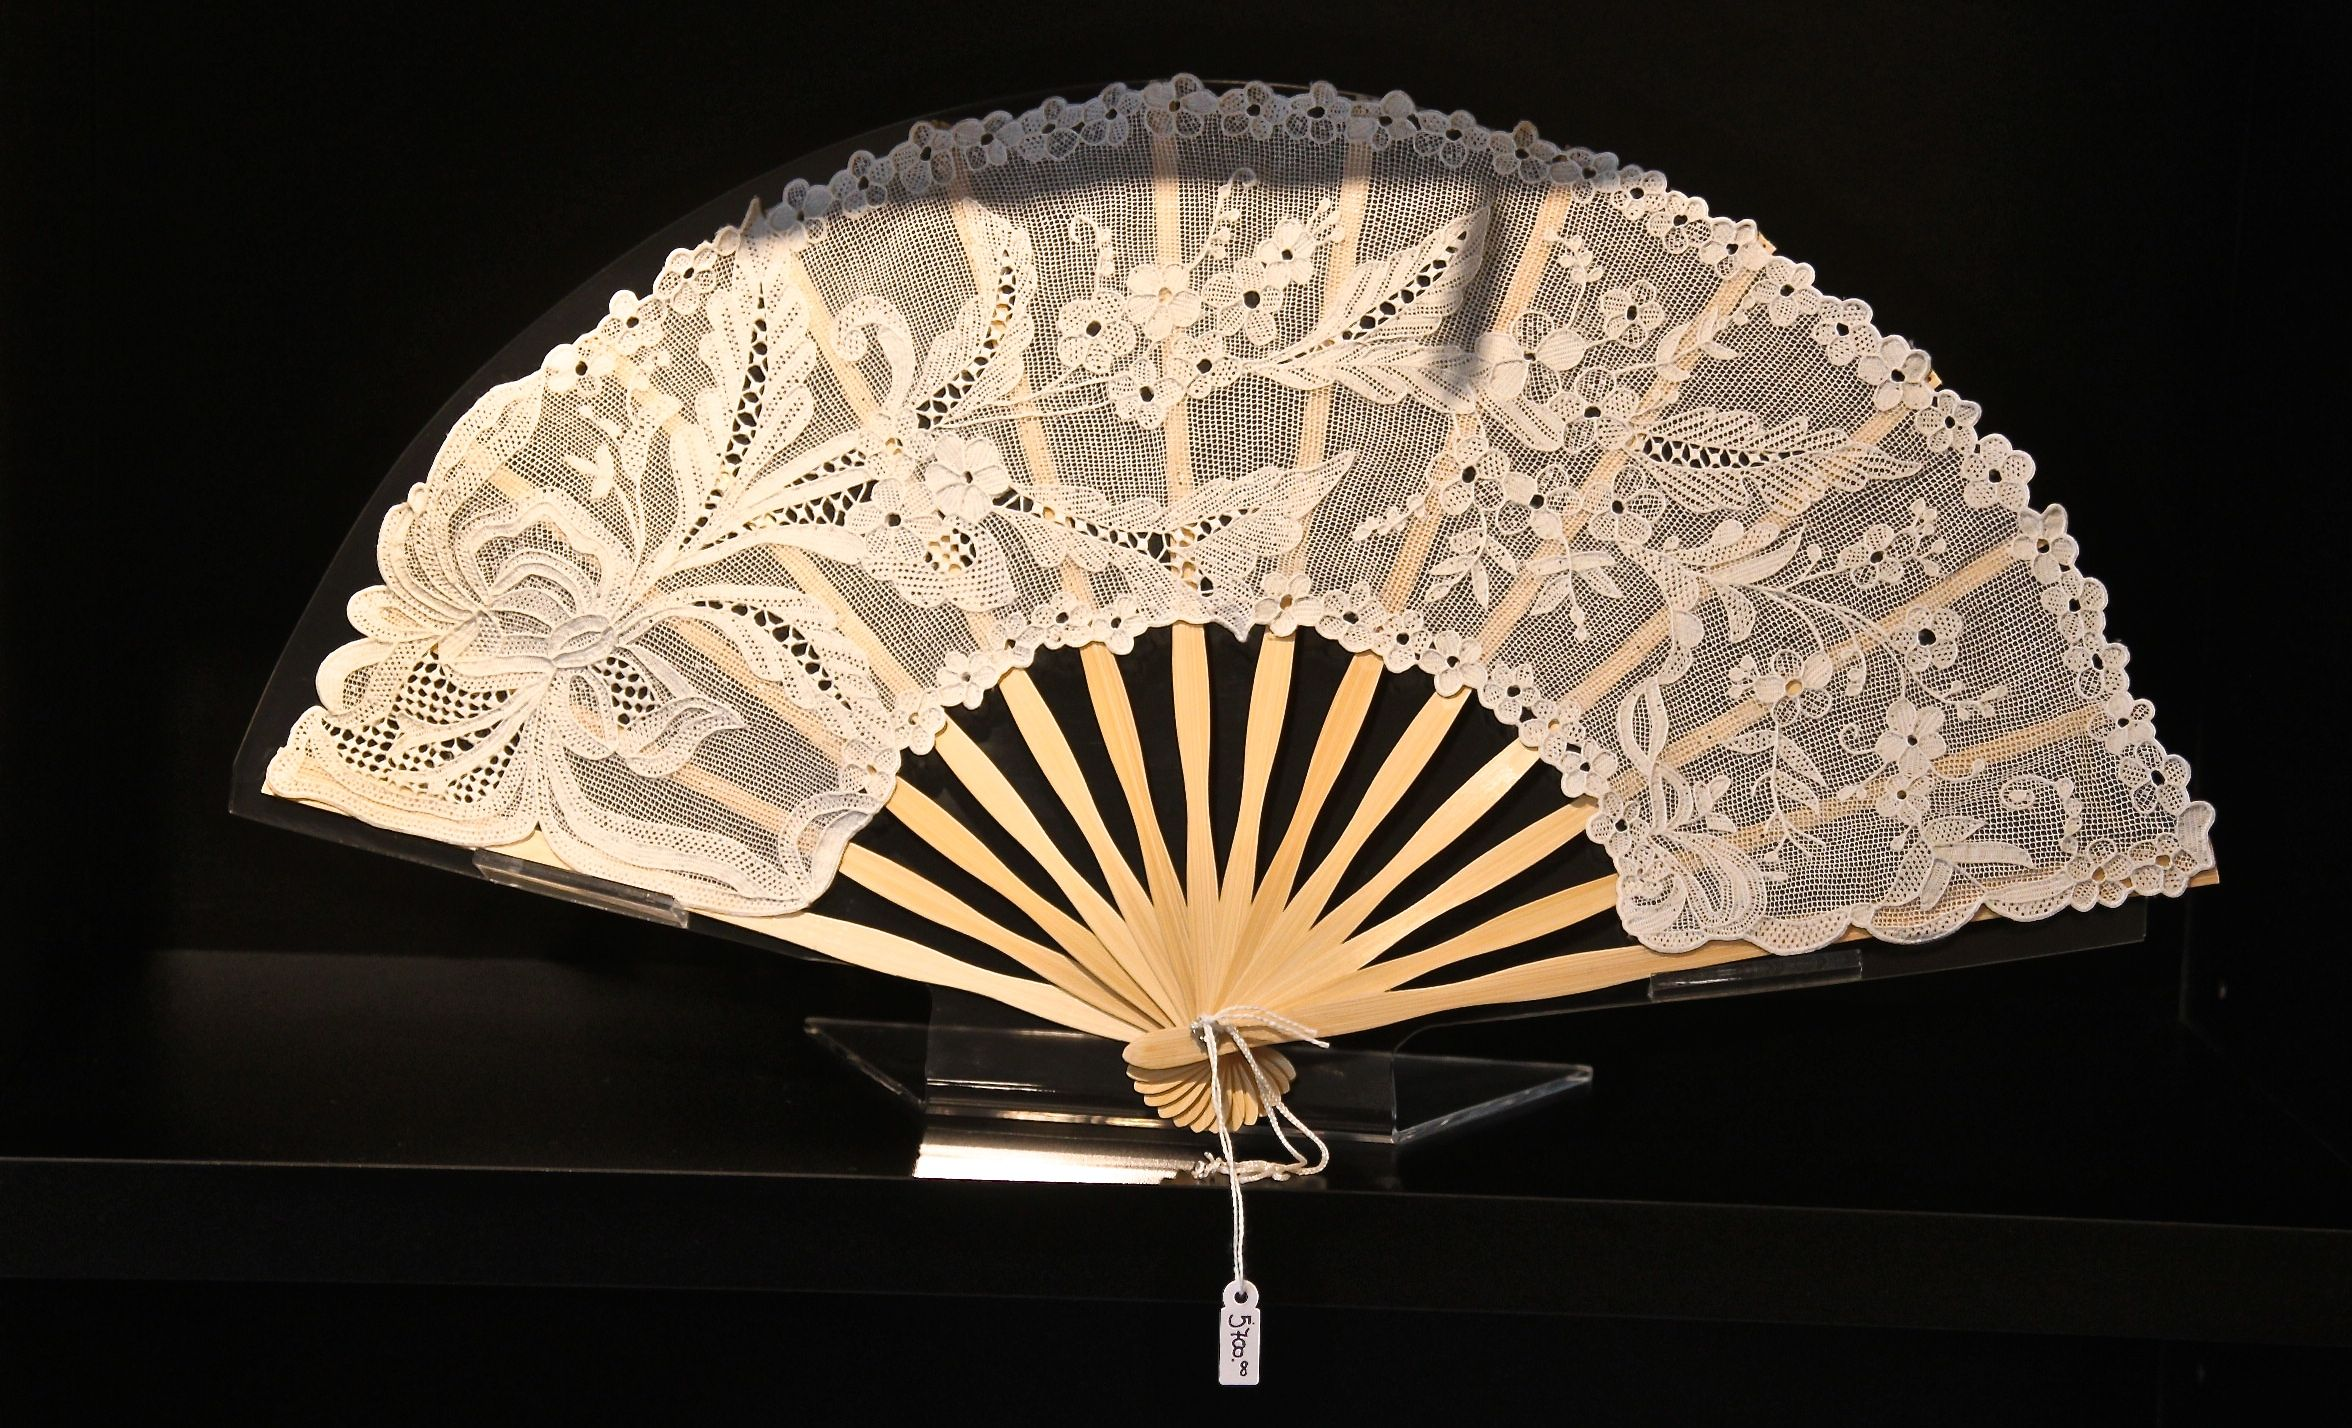 Photo of a Burano lace fan from Venice